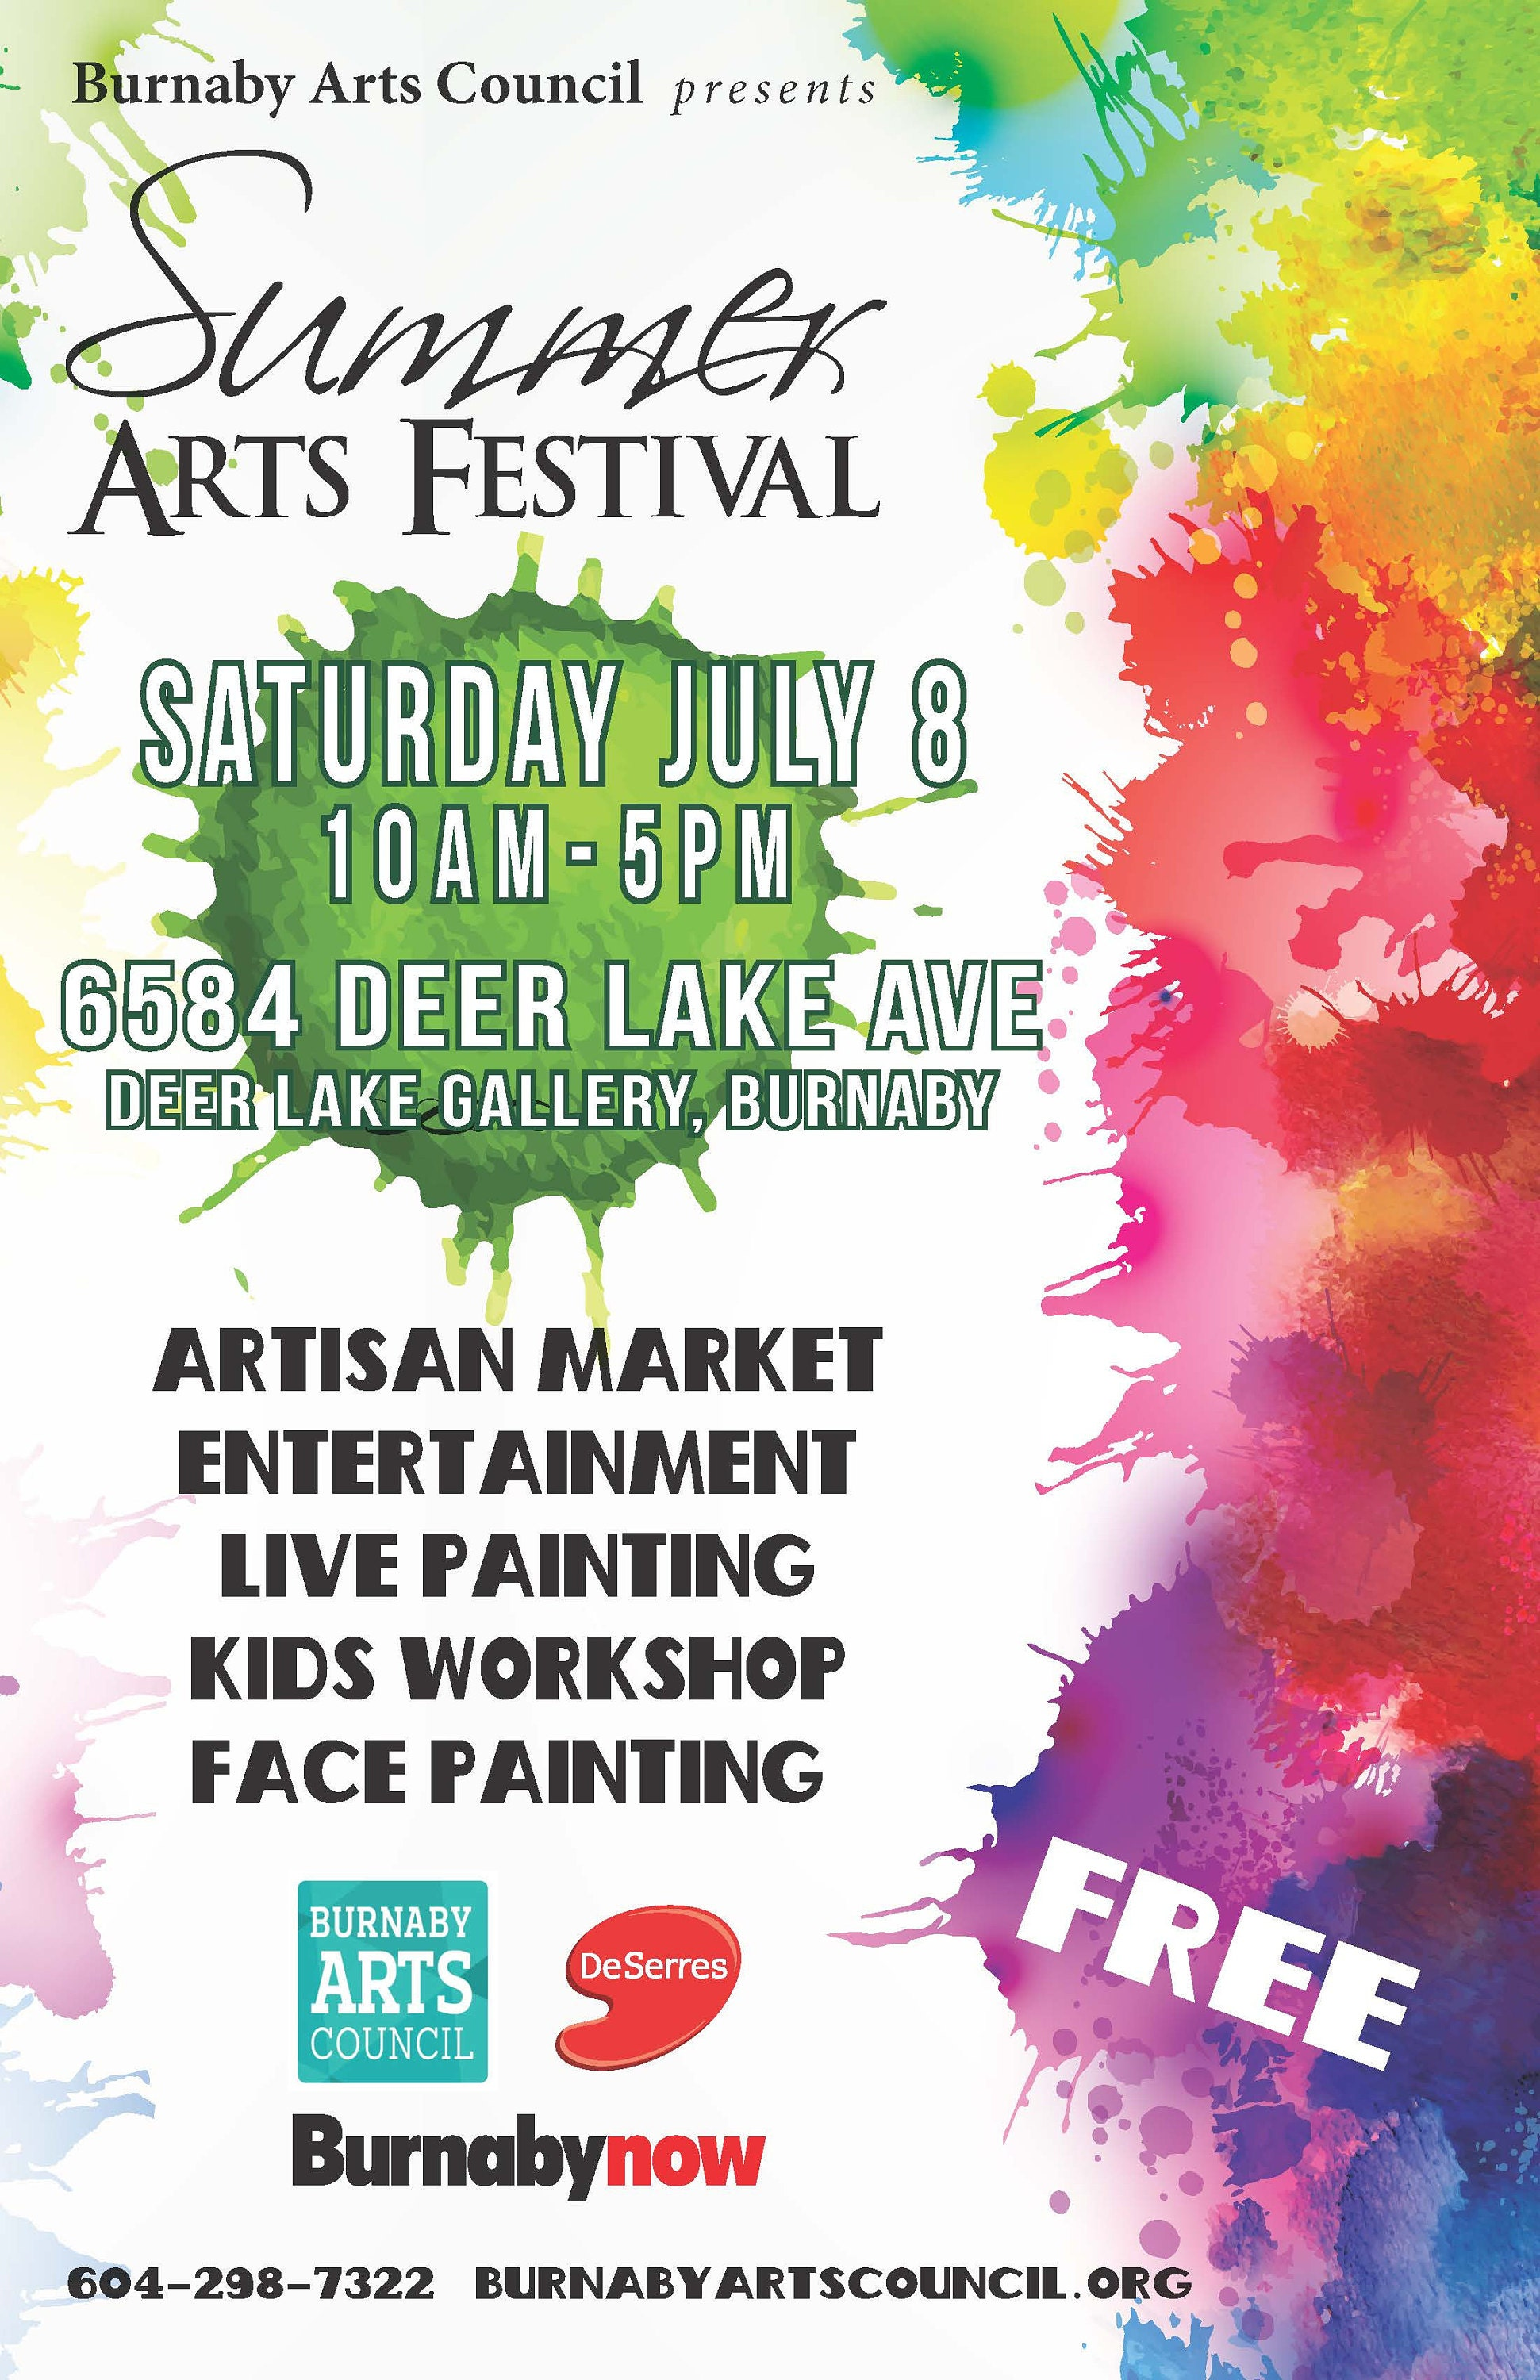 Summer Arts Festival in Burnaby, BC